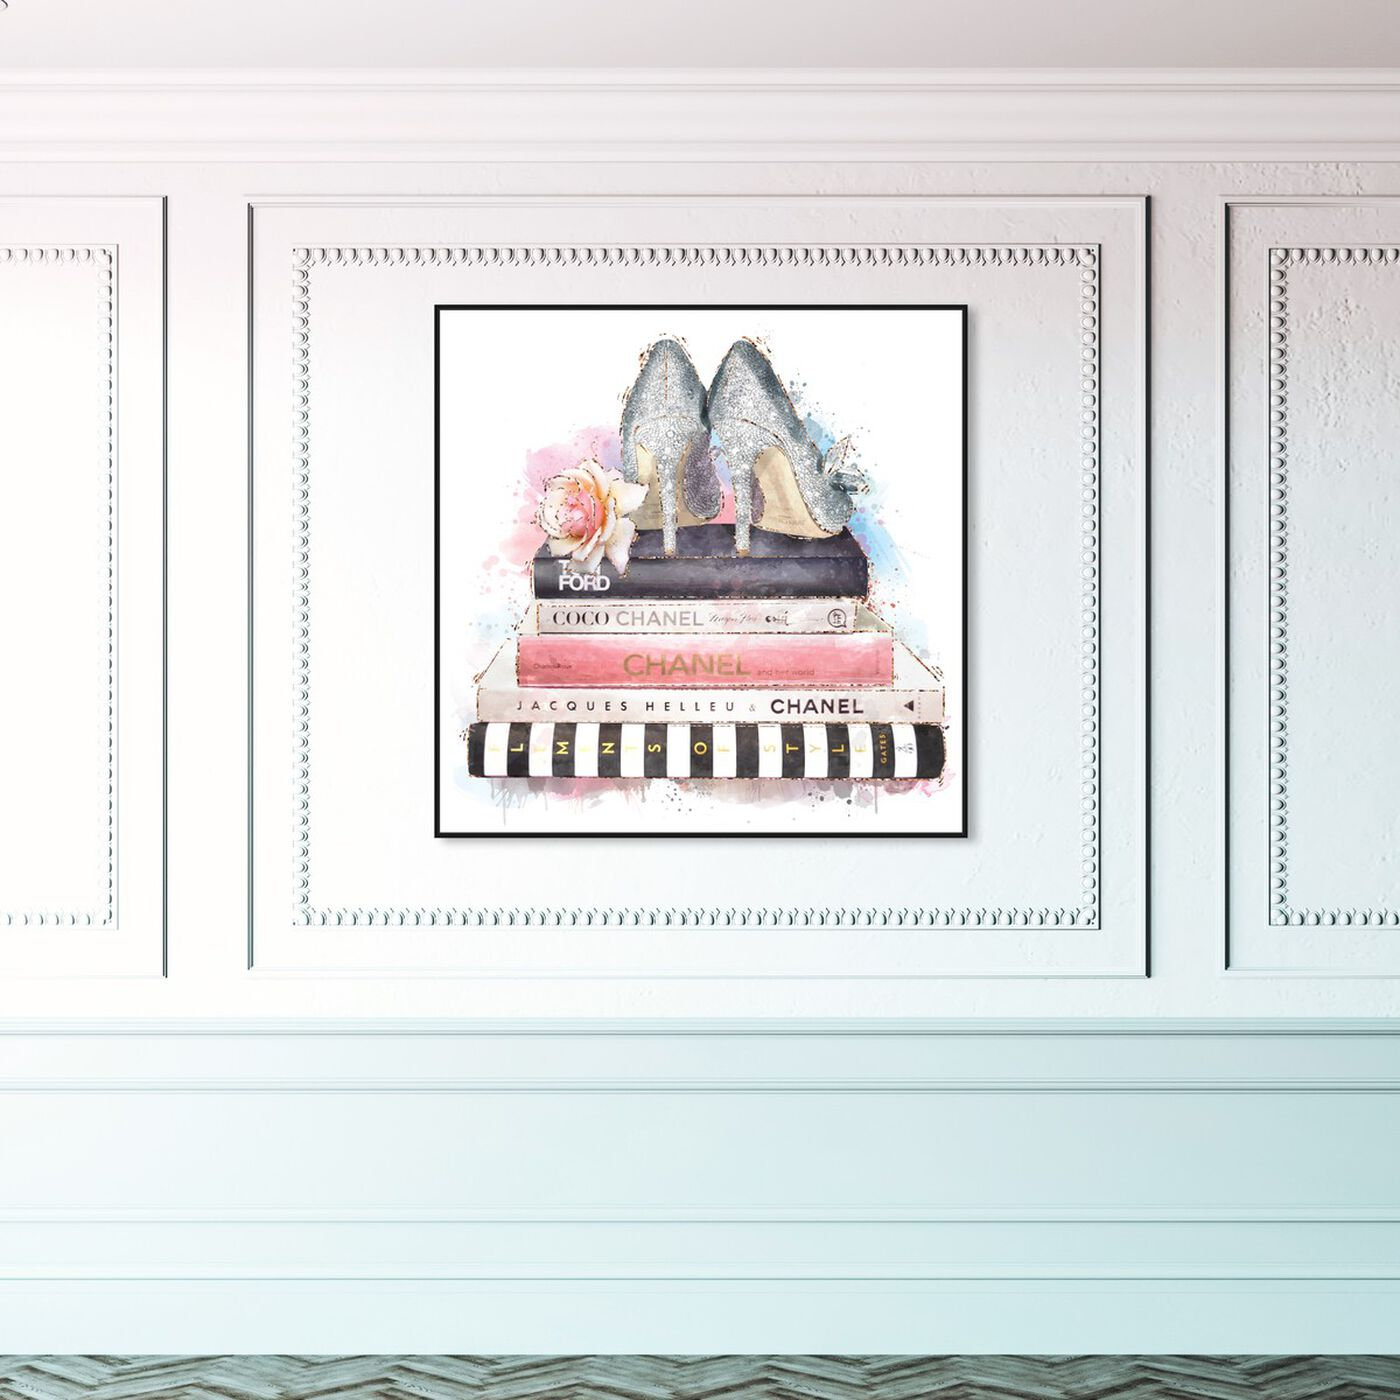 Hanging view of Silver Blush Girlboss featuring fashion and glam and books art.